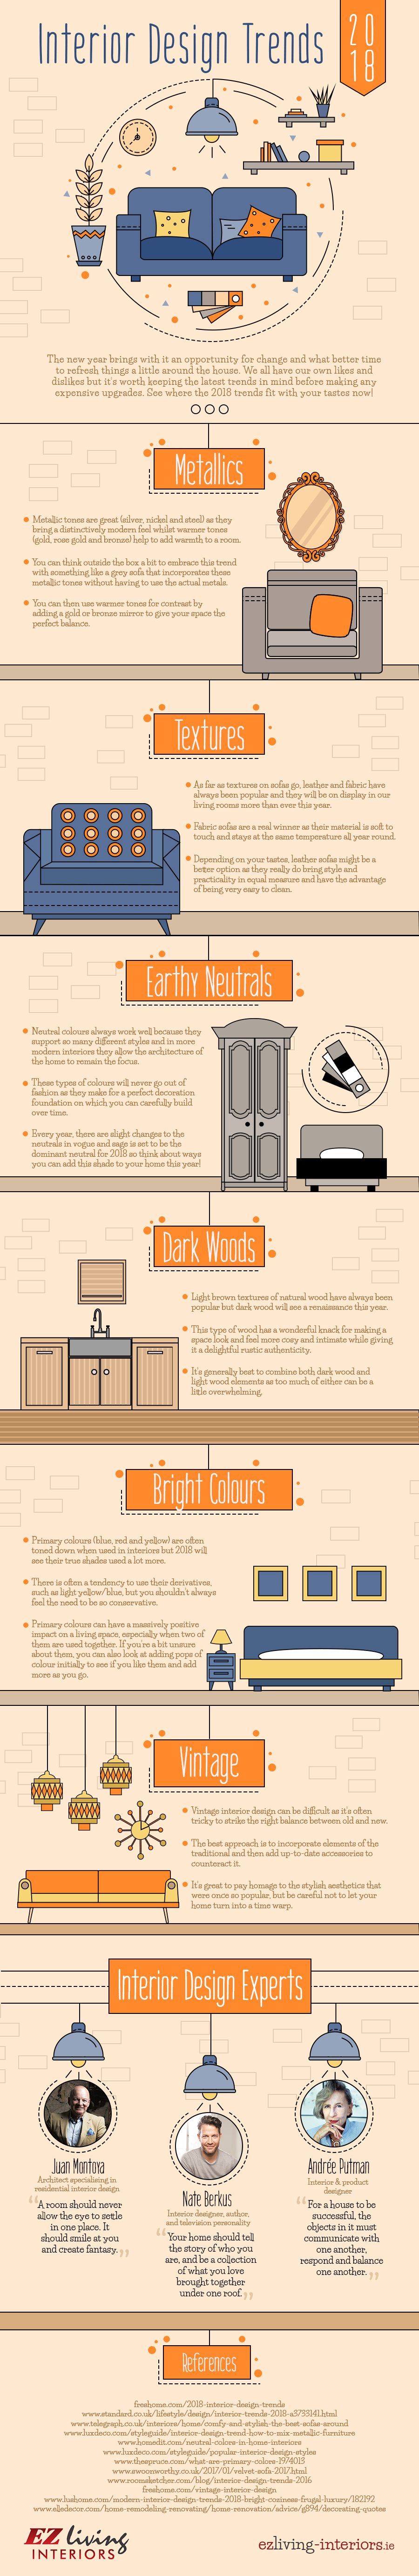 Infographic: Interior Design Trends 2018